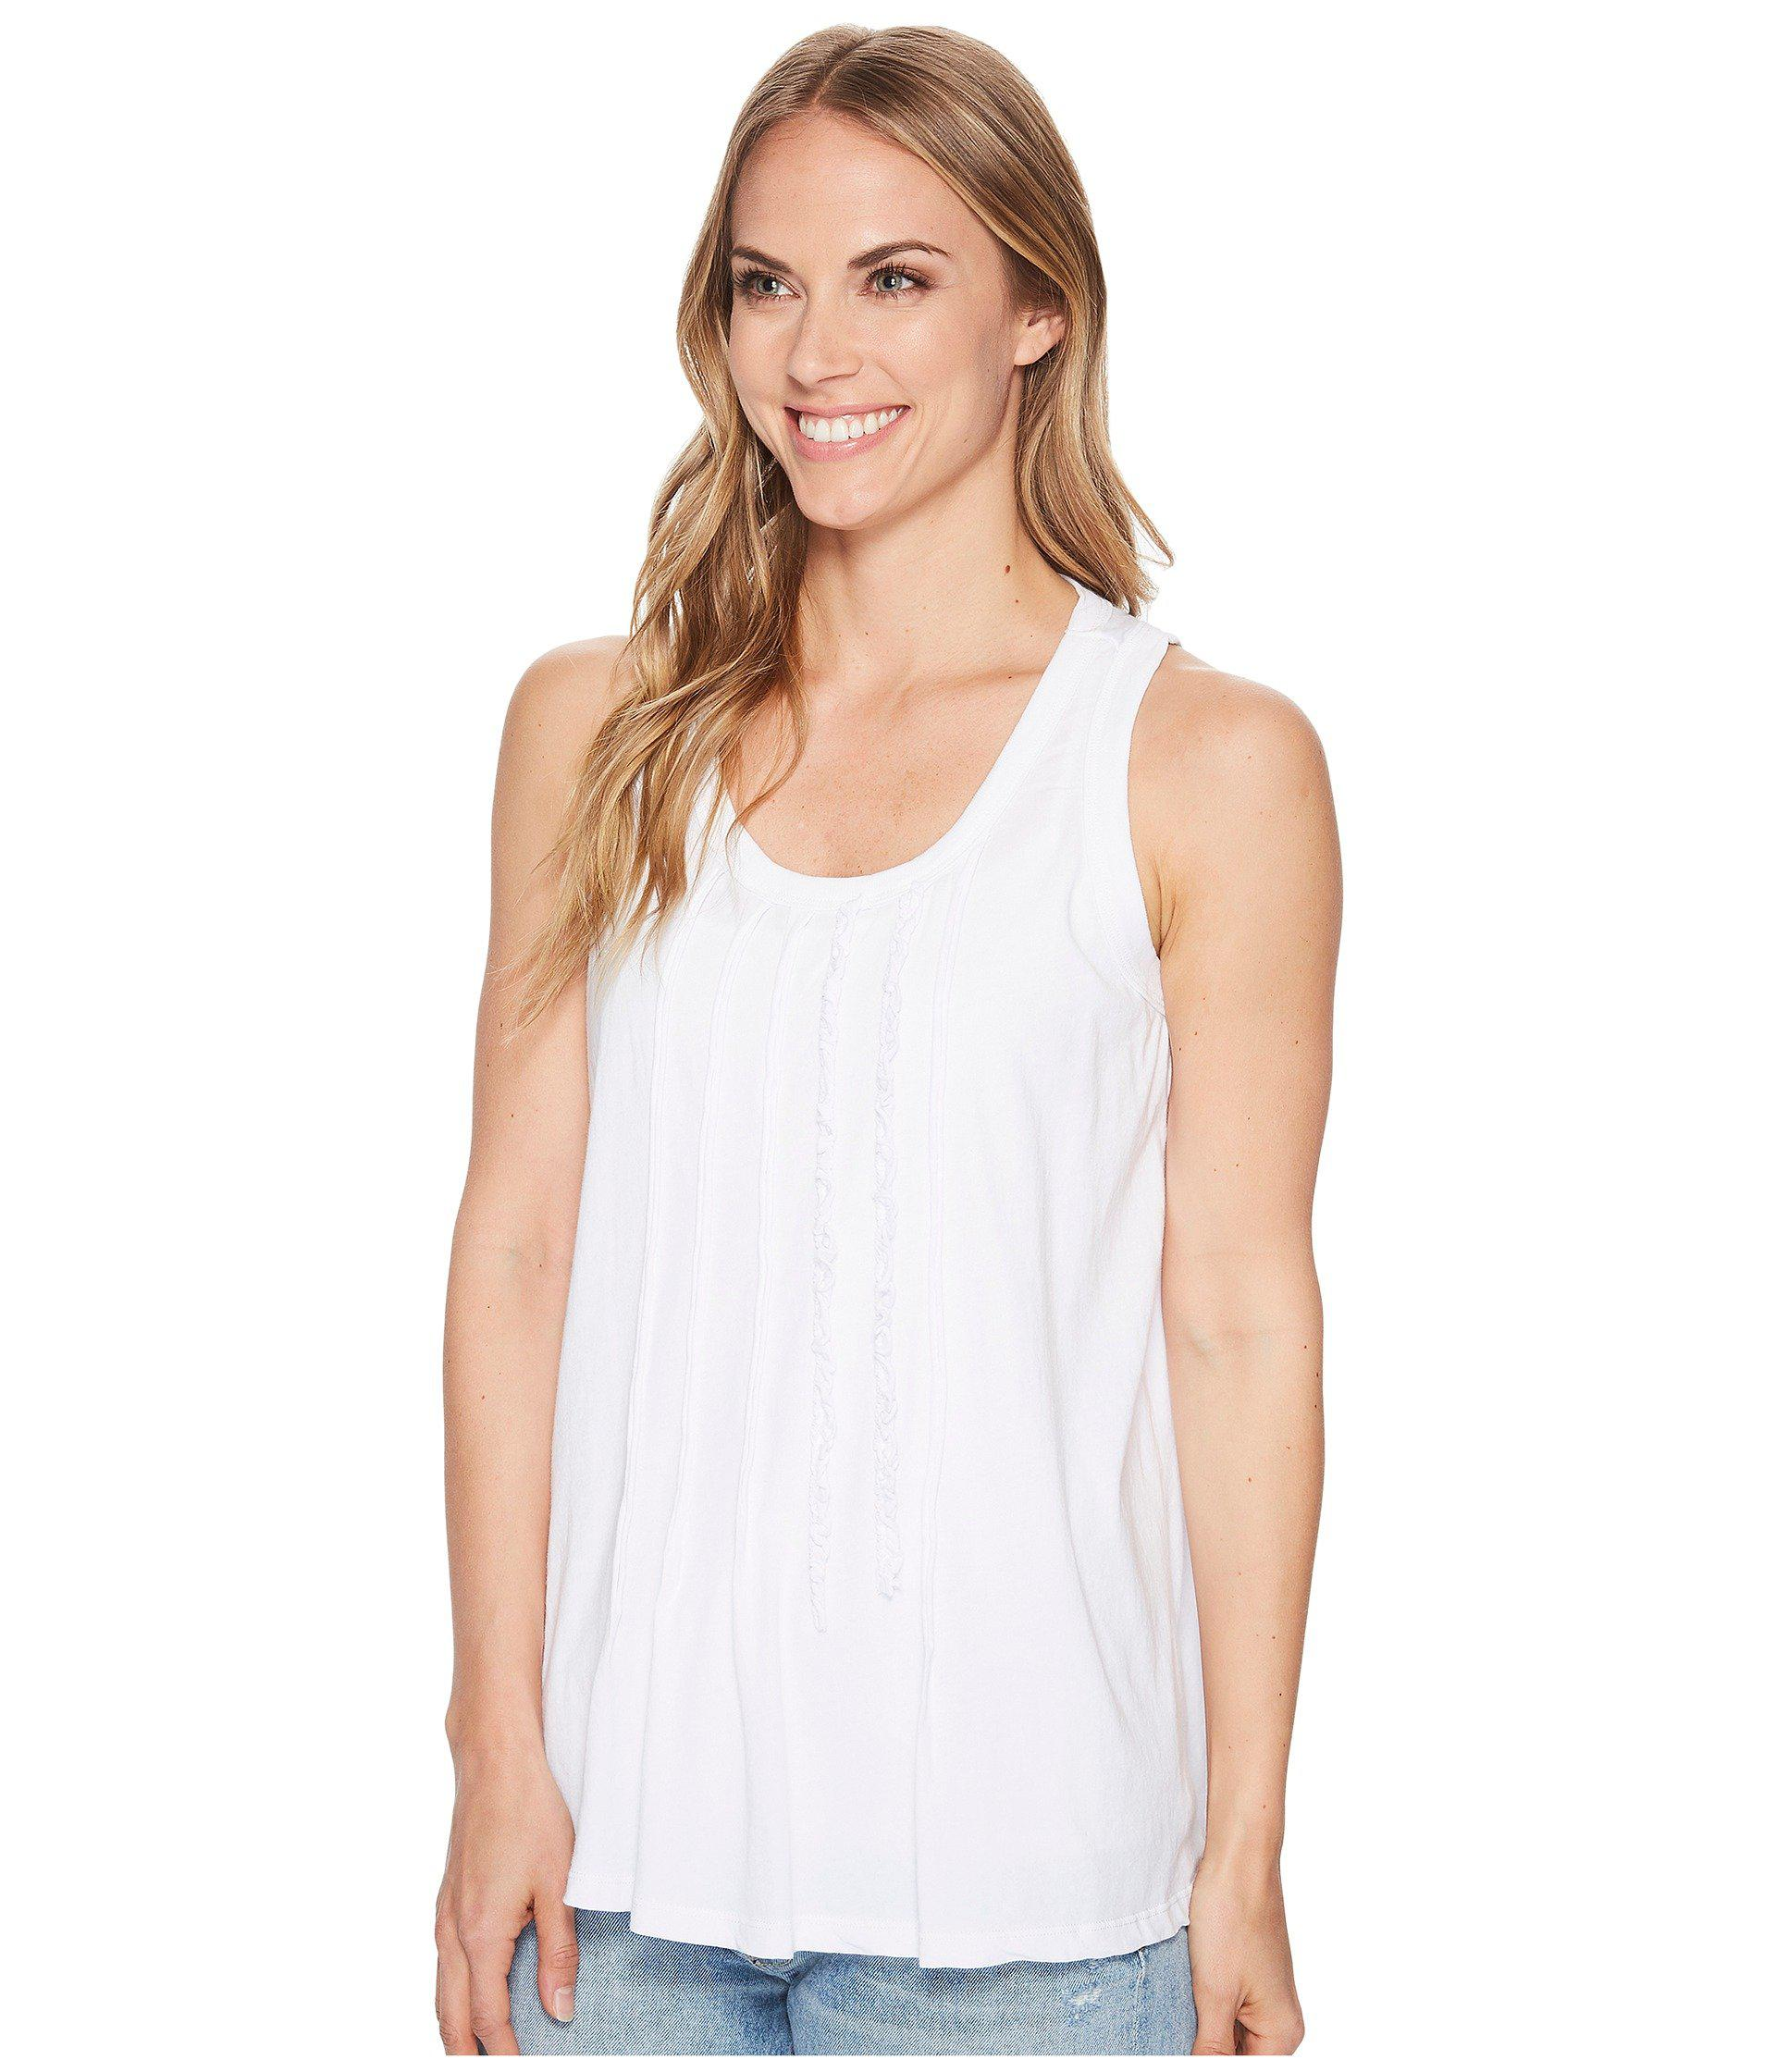 209705df6de2c Lyst - Dylan By True Grit Vintage Soft Cotton Pleated And Ruffle Tank Top  in White - Save 59%